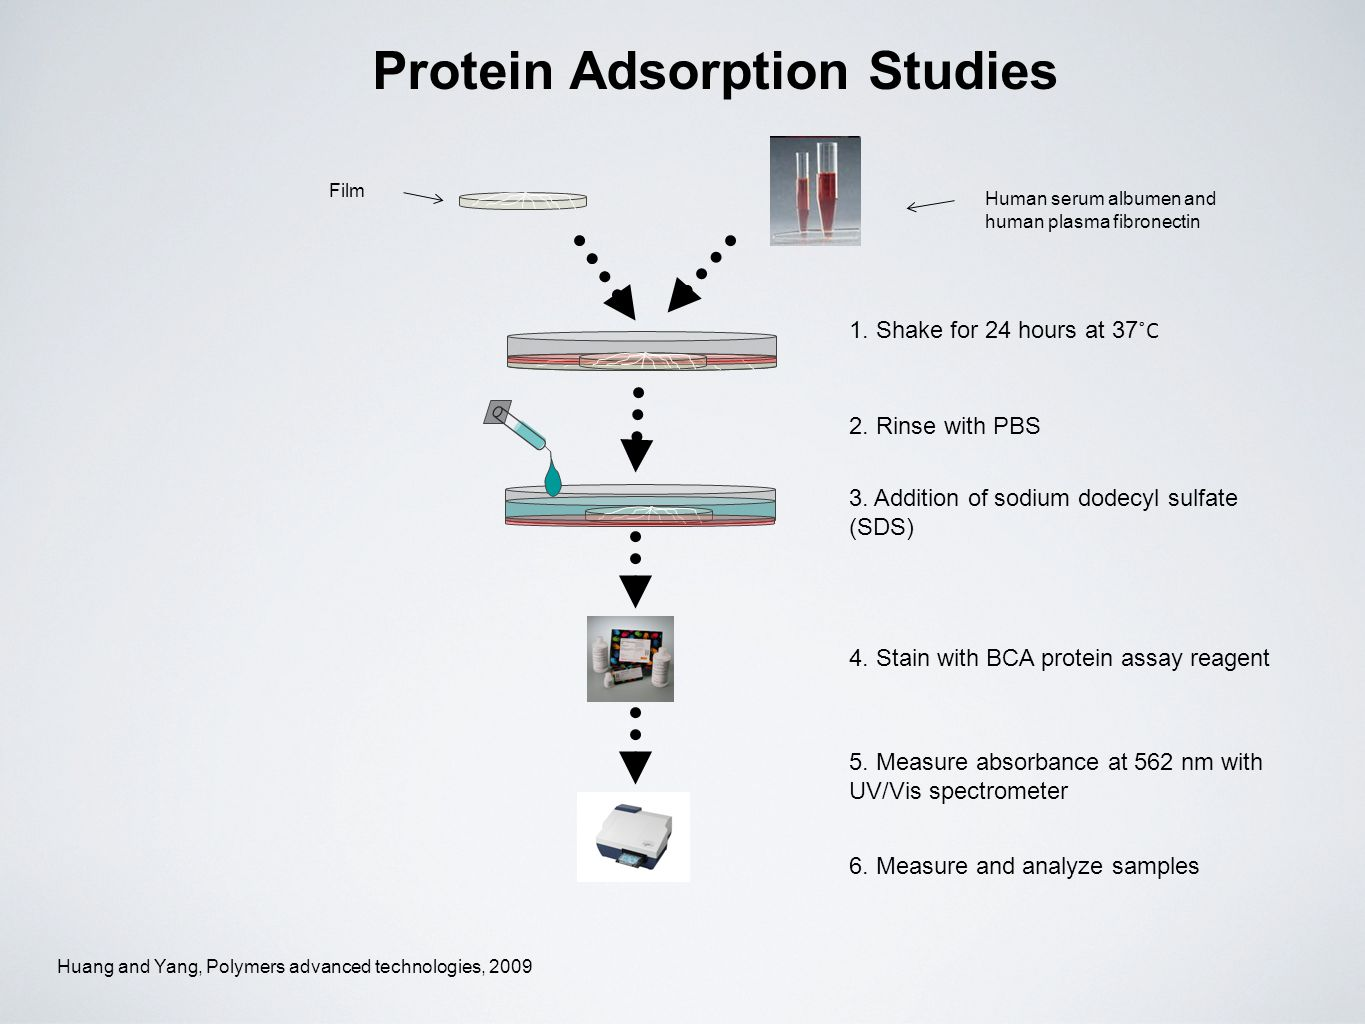 Protein Adsorption Studies